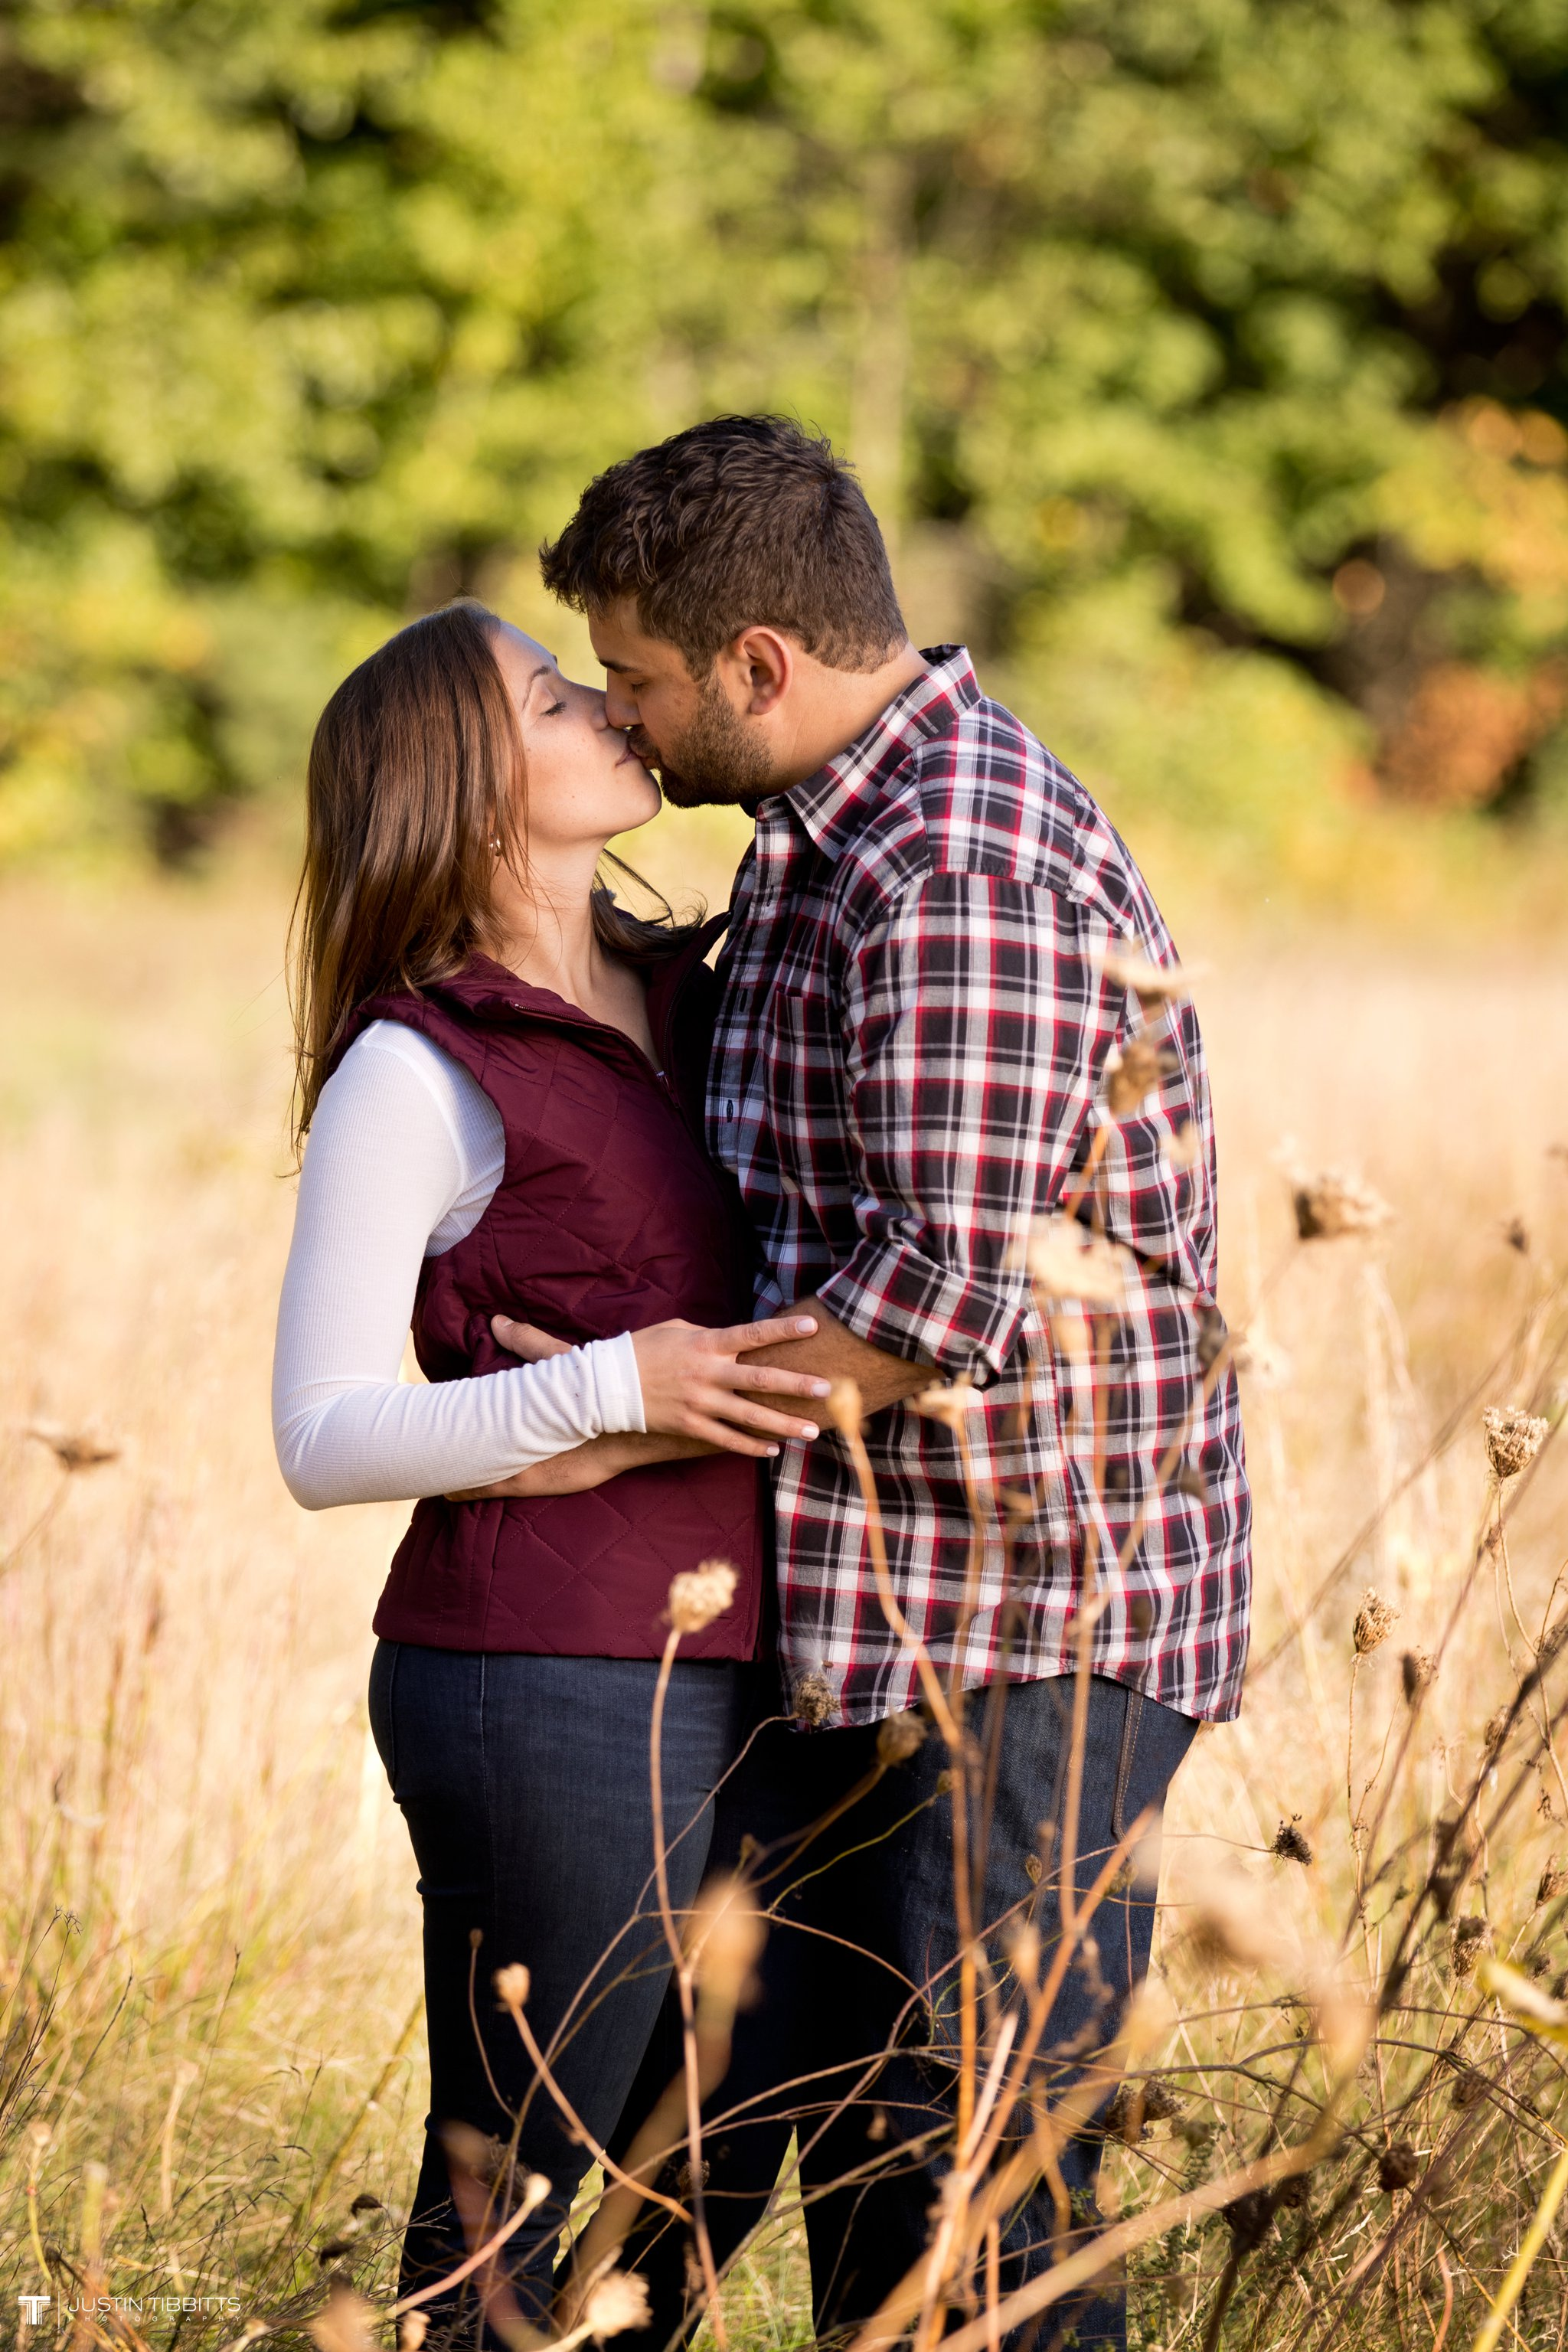 saratoga-springs-ny-engagement-shoot-with-nick-and-ciara_0014